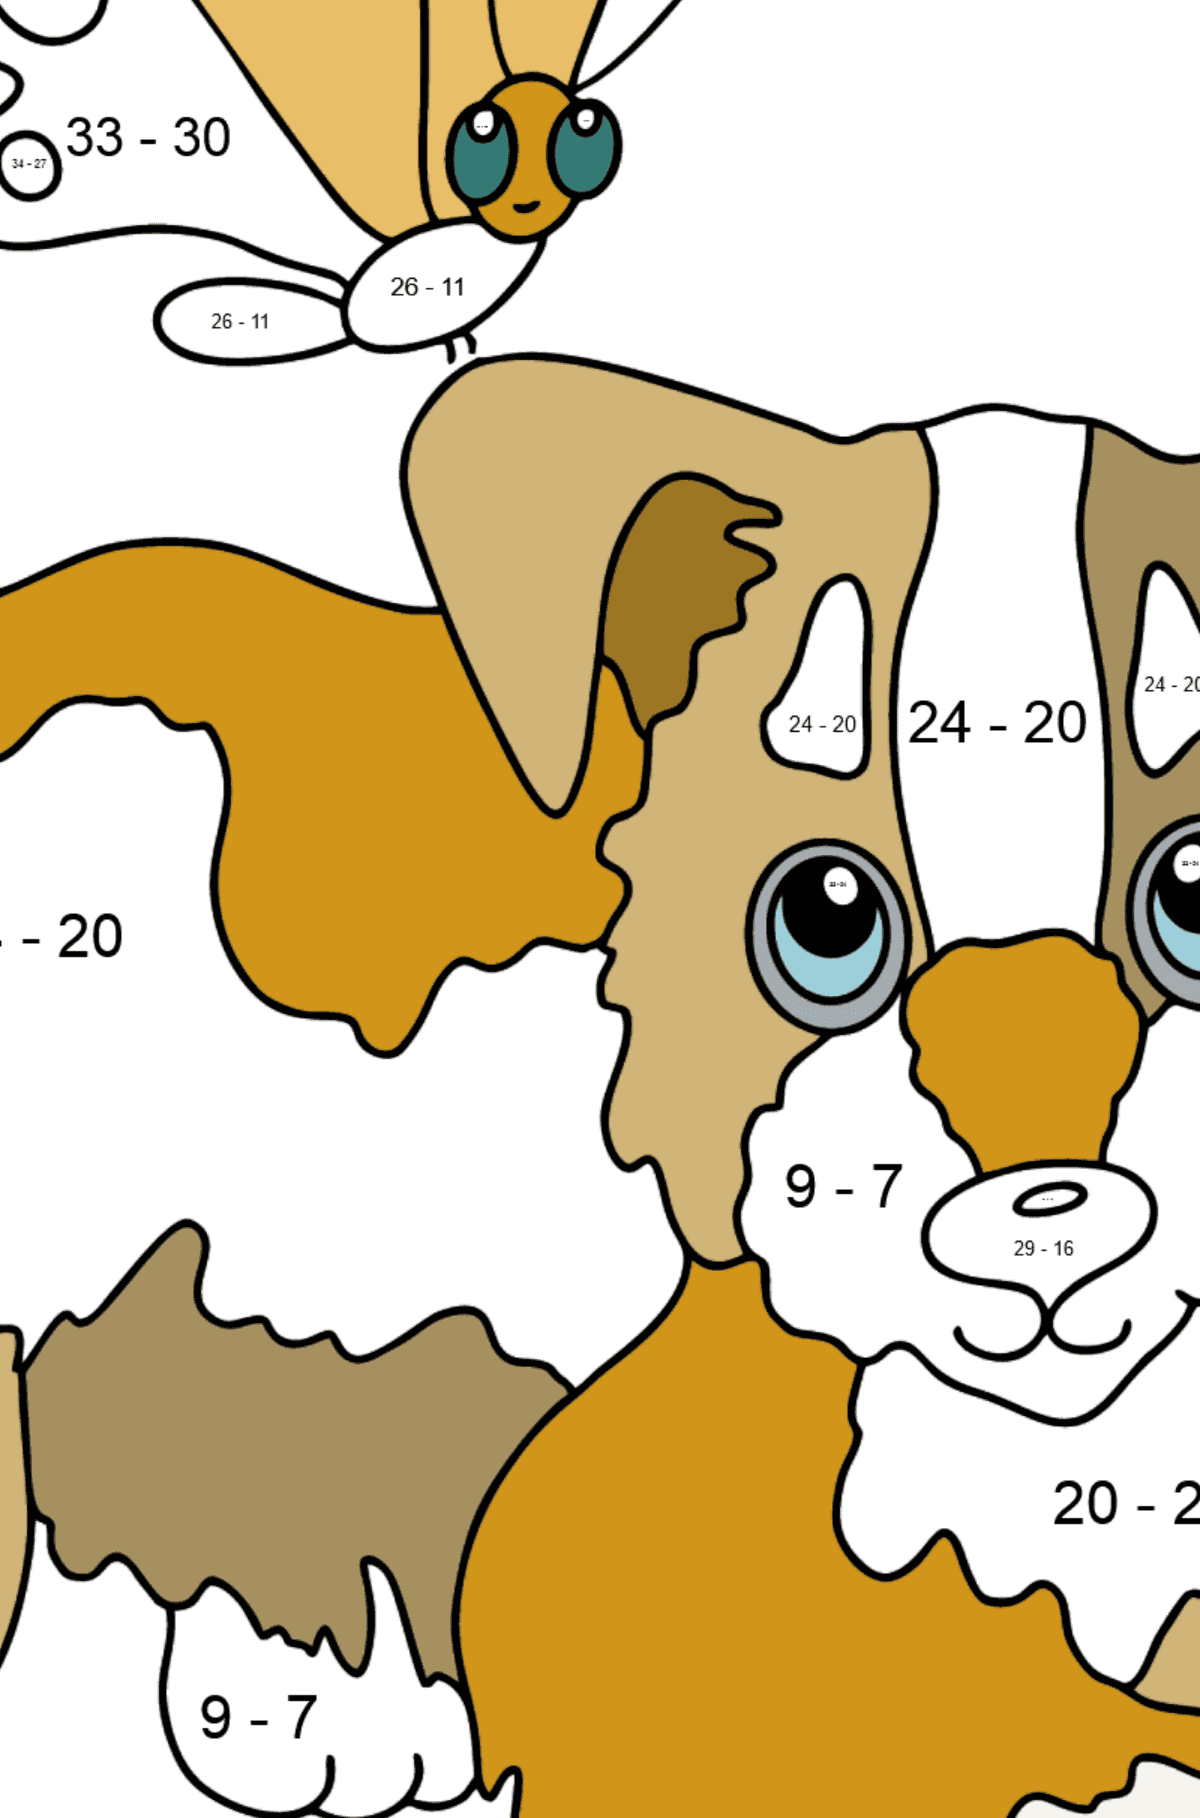 Coloring Page - A Dog is Playing with a Butterfly - Math Coloring - Subtraction for Kids